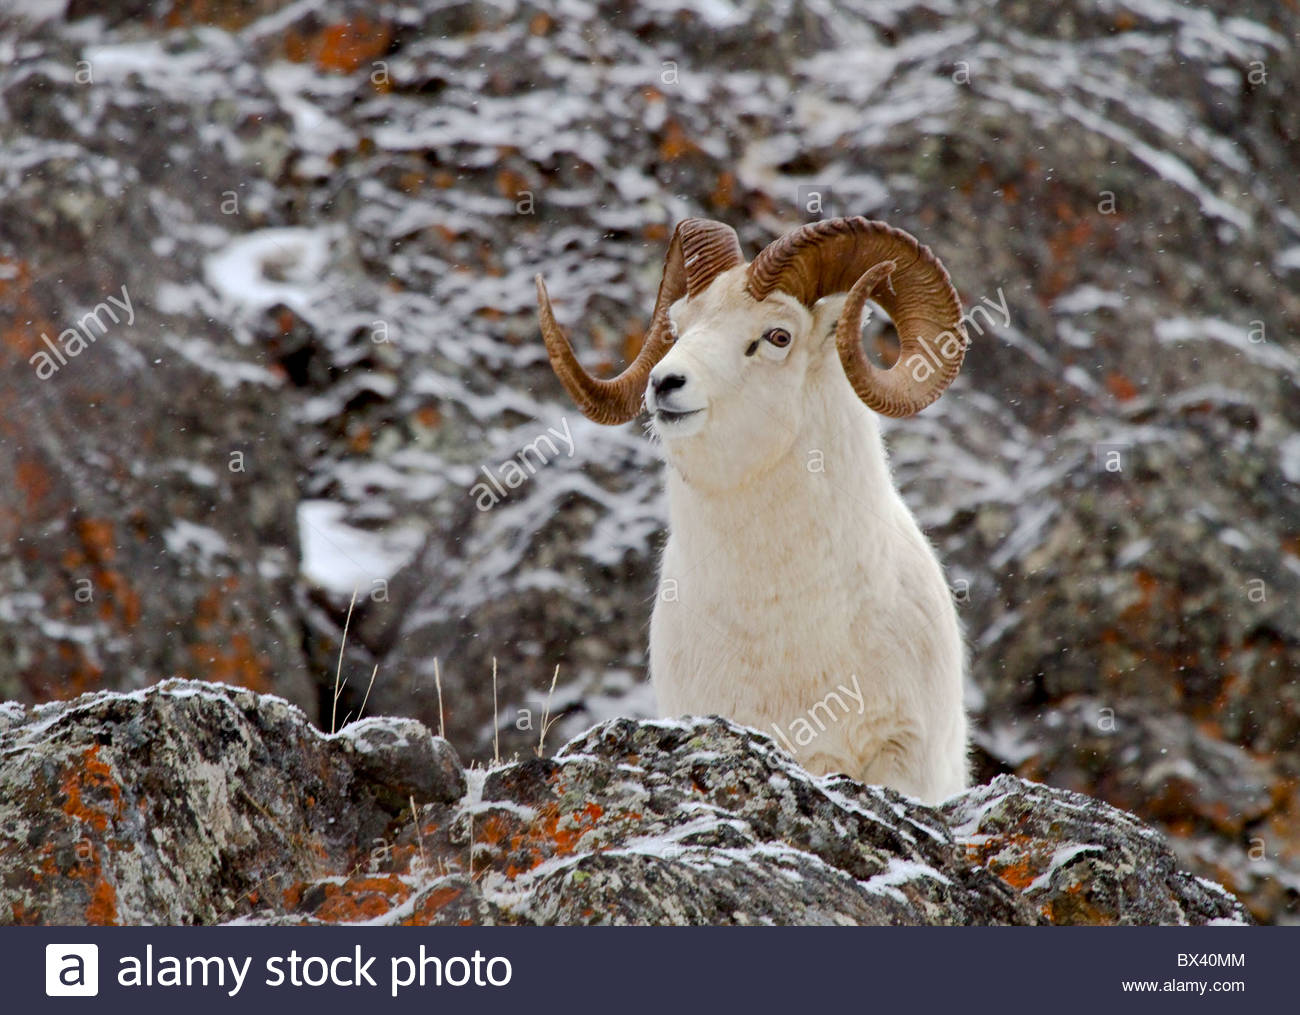 Alaska. Dall sheep (Orvis dalli) full curl ram in the snowy mountains of Chugach State Park, Turnagain Arm.. - Stock Image